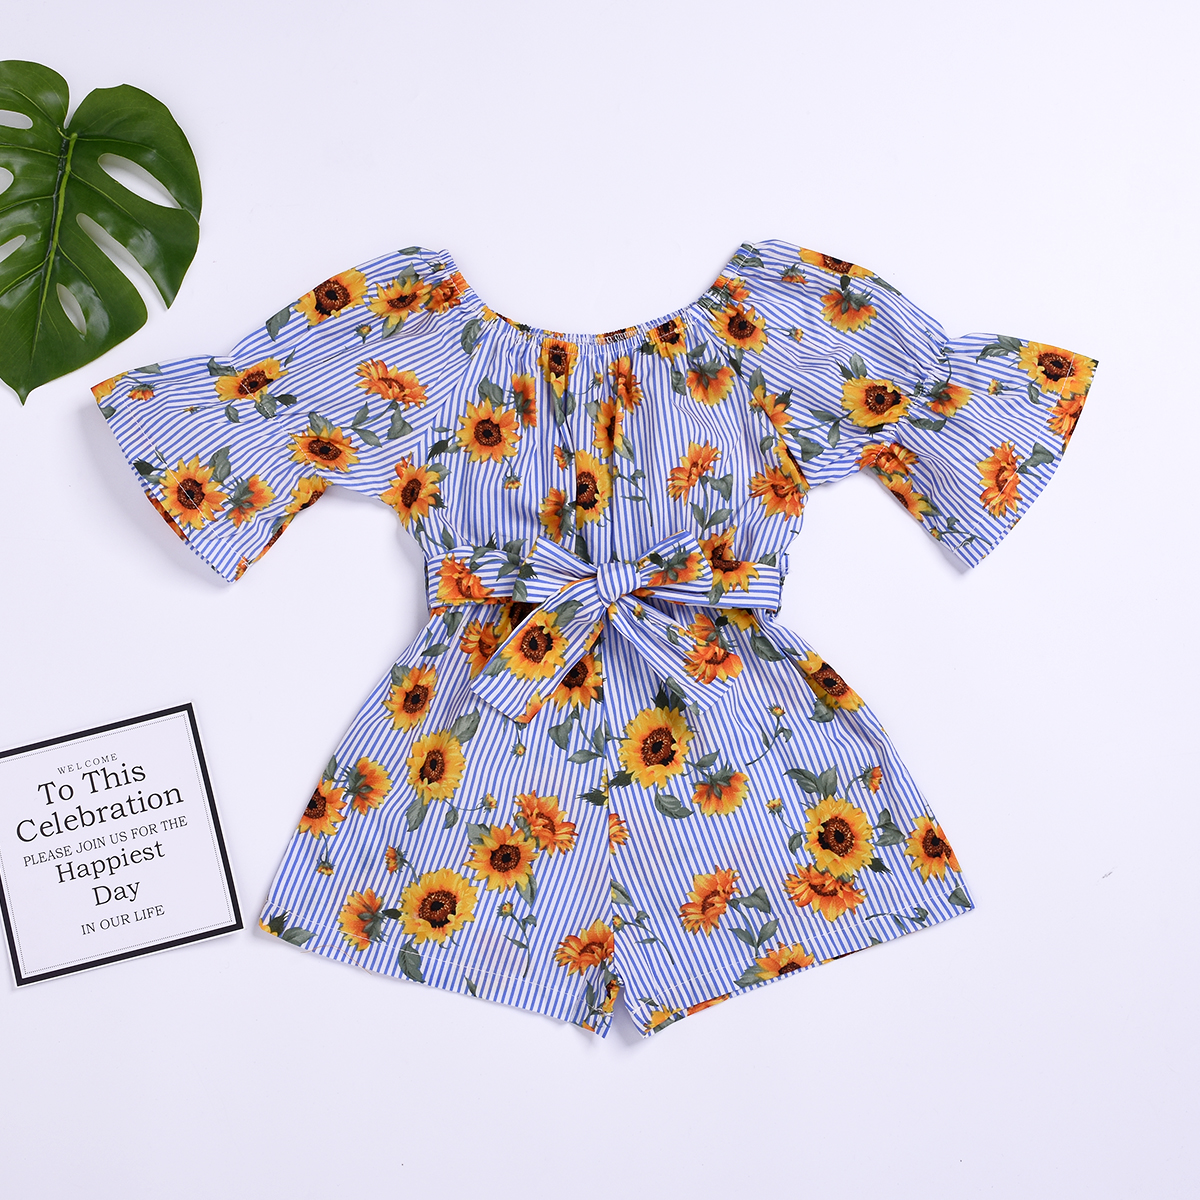 Pudcoco Summer Newest Fashion Toddler Baby Girl Clothes Sunflower Print Striped Romper Jumpsuit One-Piece Outfit Sunsuit